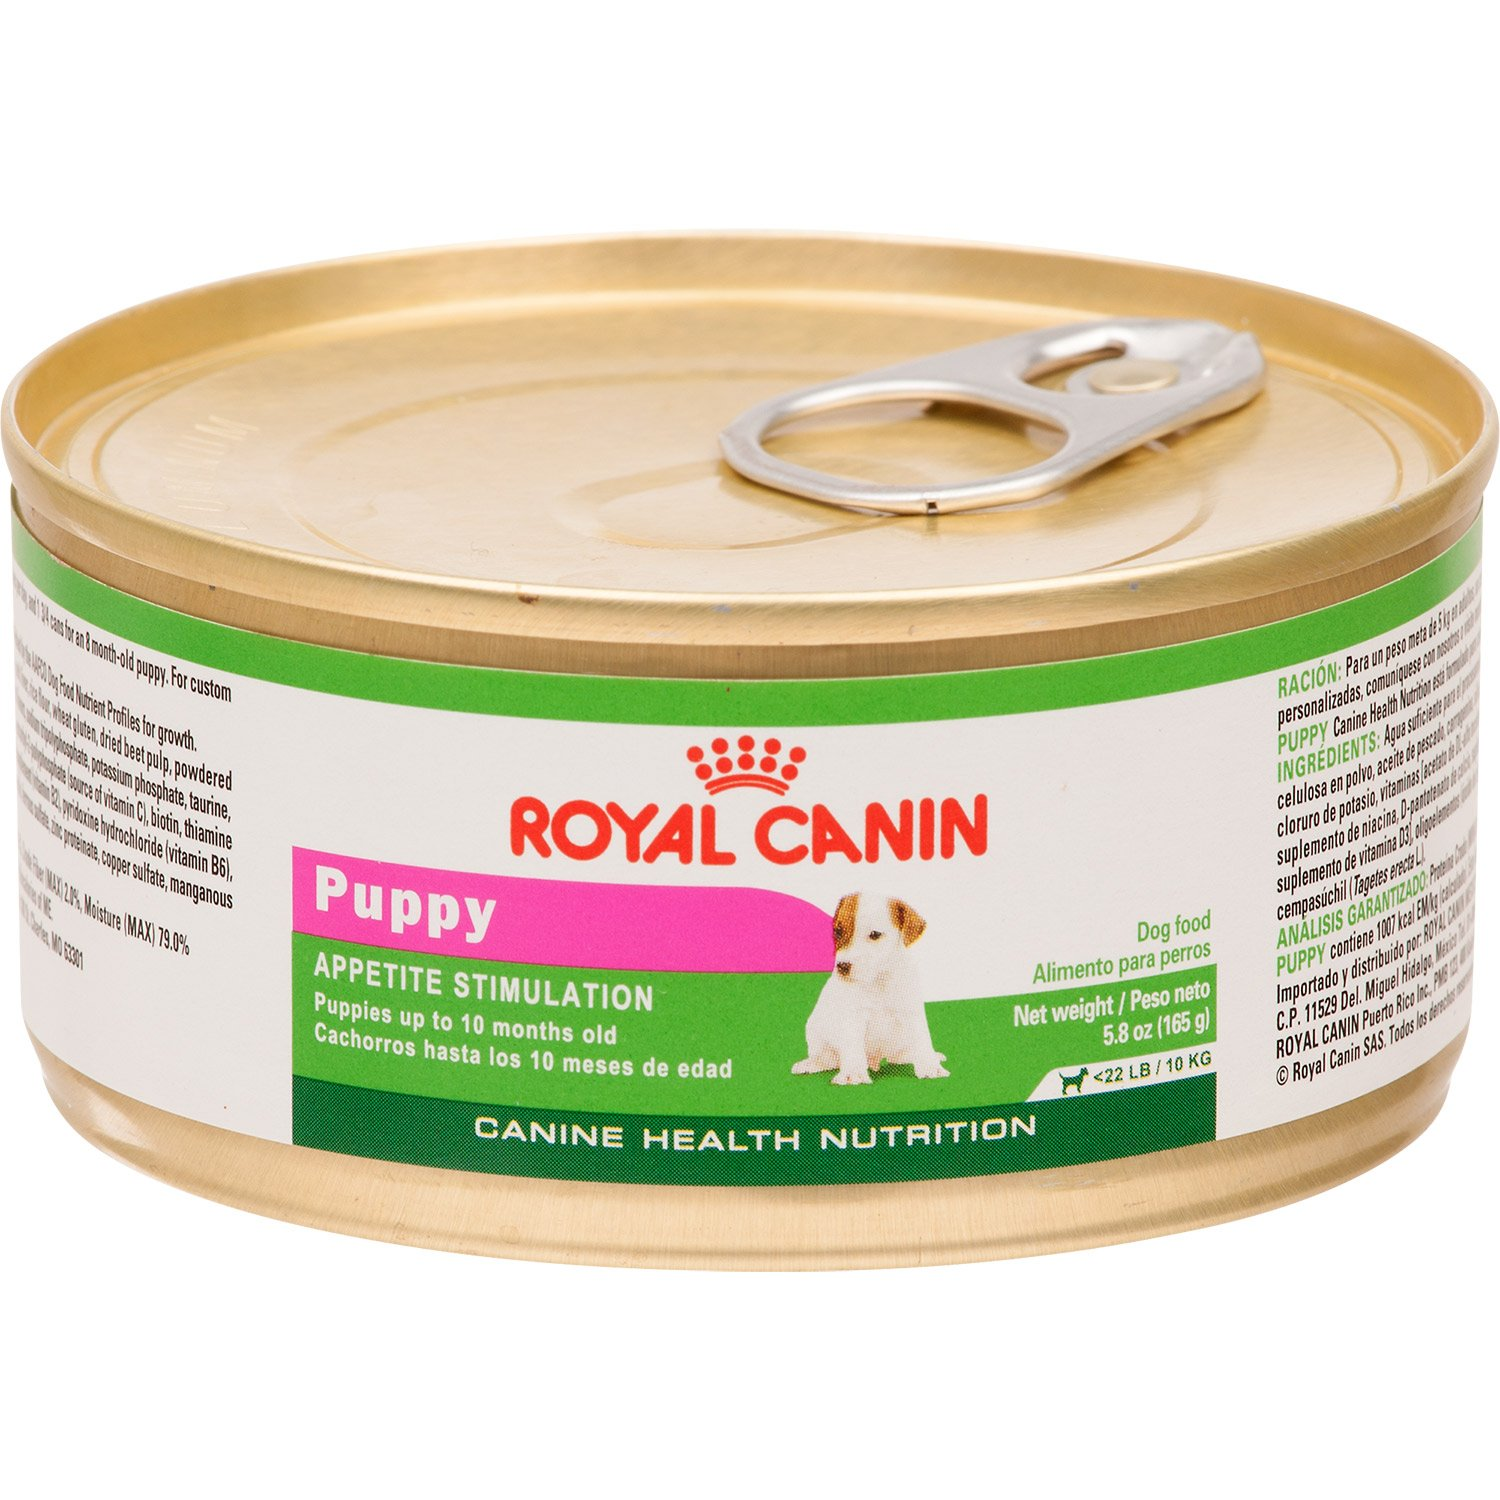 royal canin canine health nutrition canned puppy food petco. Black Bedroom Furniture Sets. Home Design Ideas